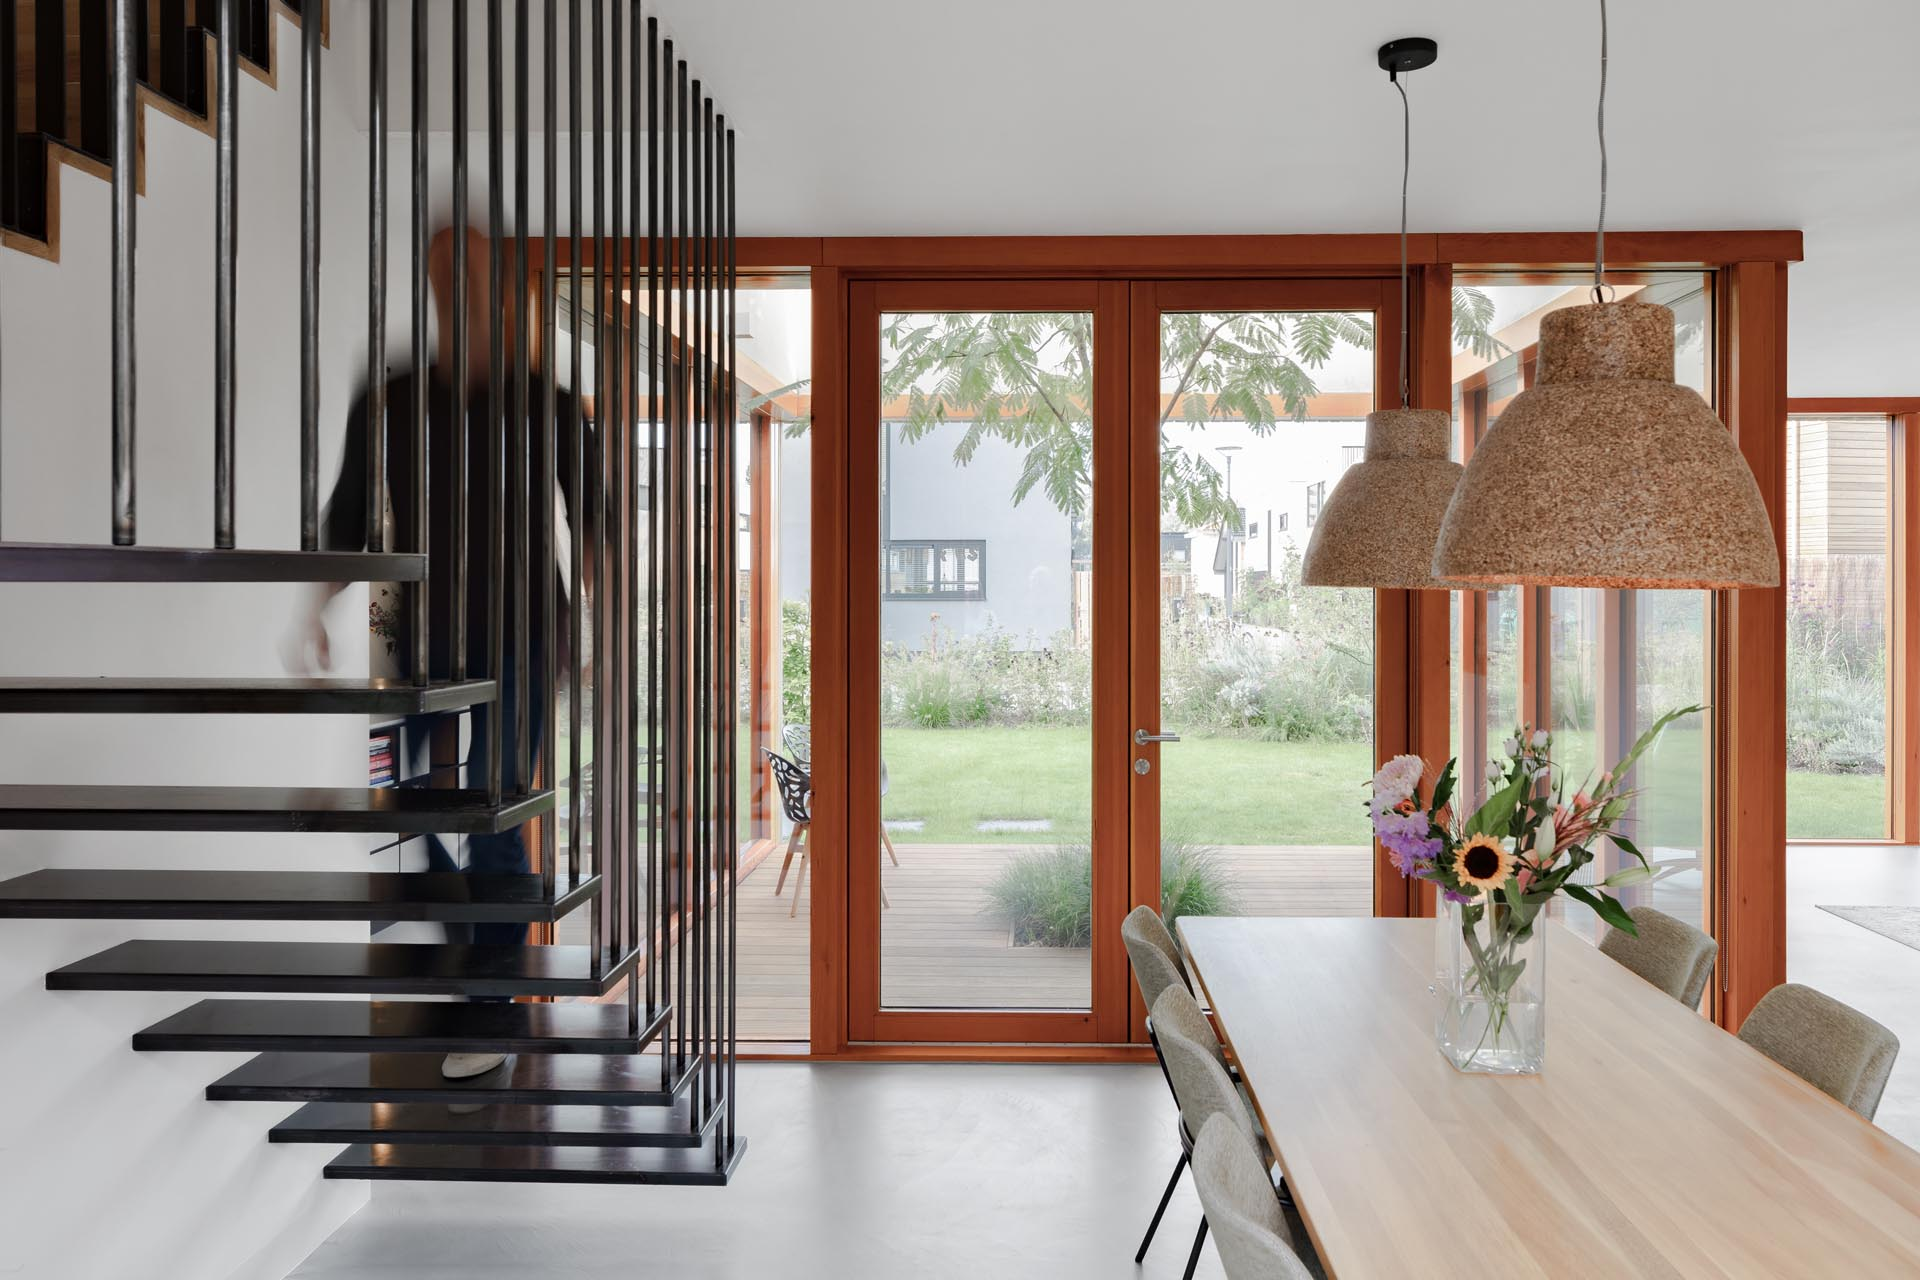 Modern black stairs that contrast the wood and glass in the dining room.